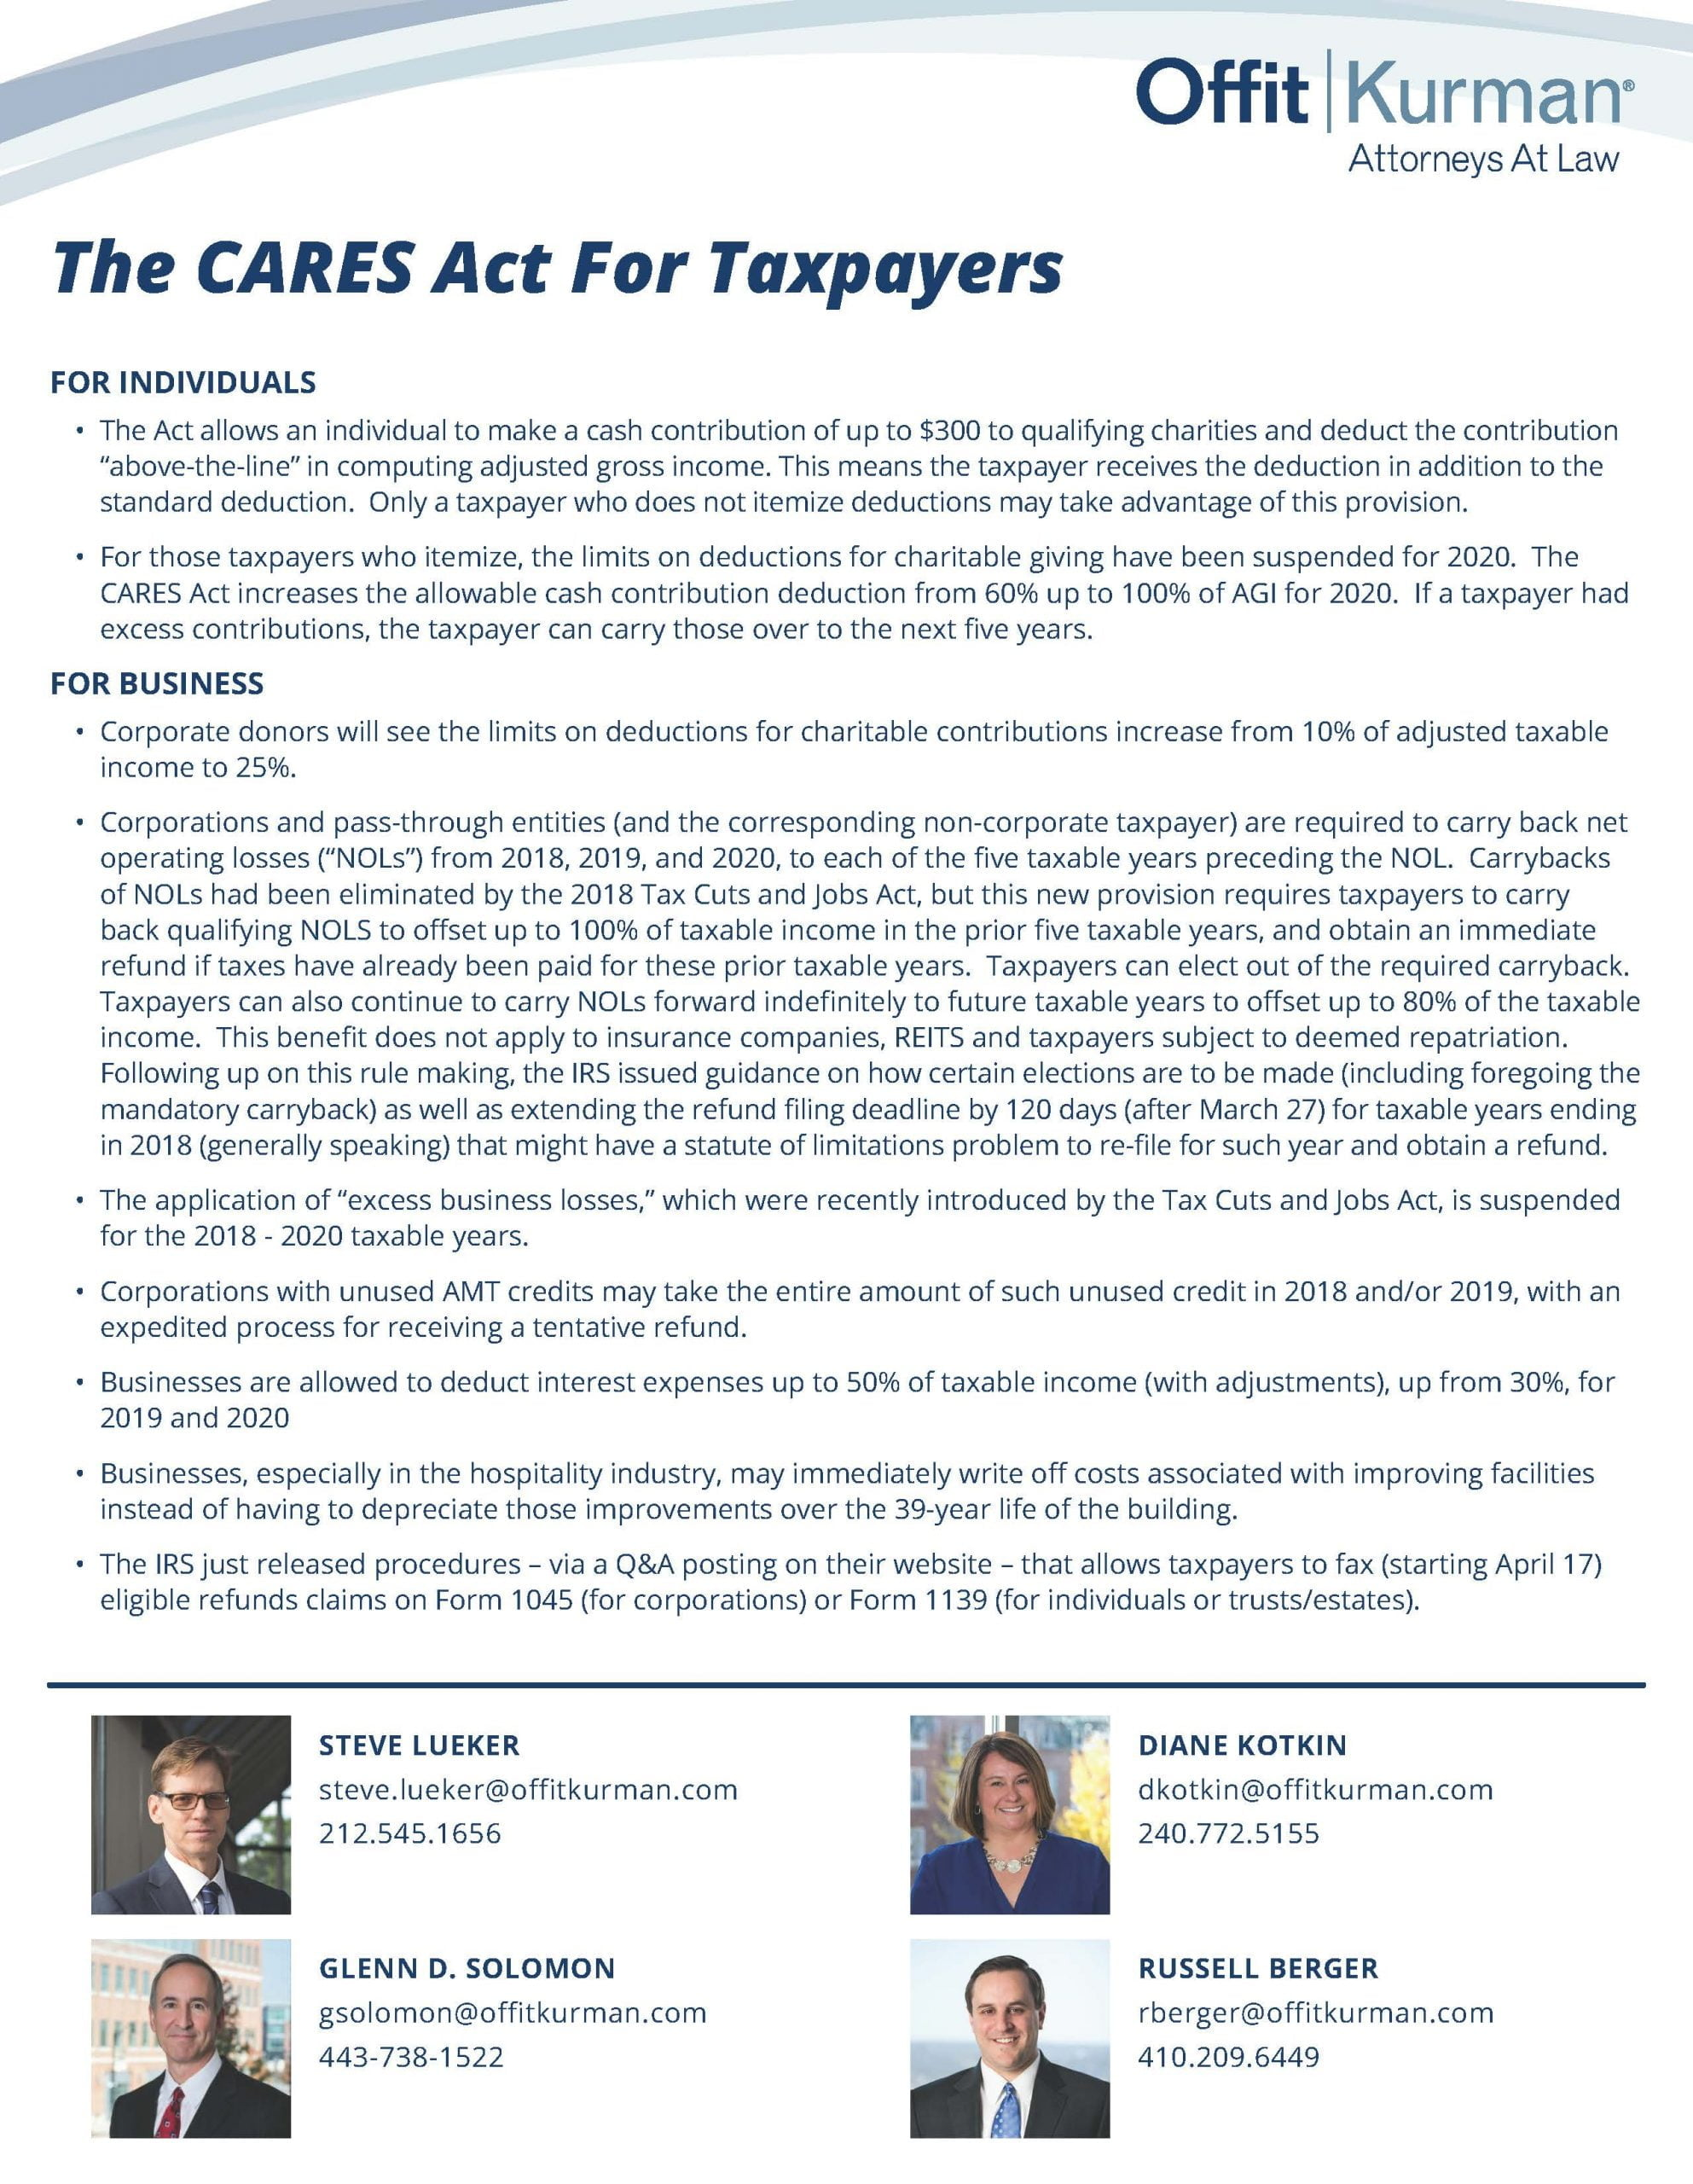 The CARES Act For Taxpayers-041520